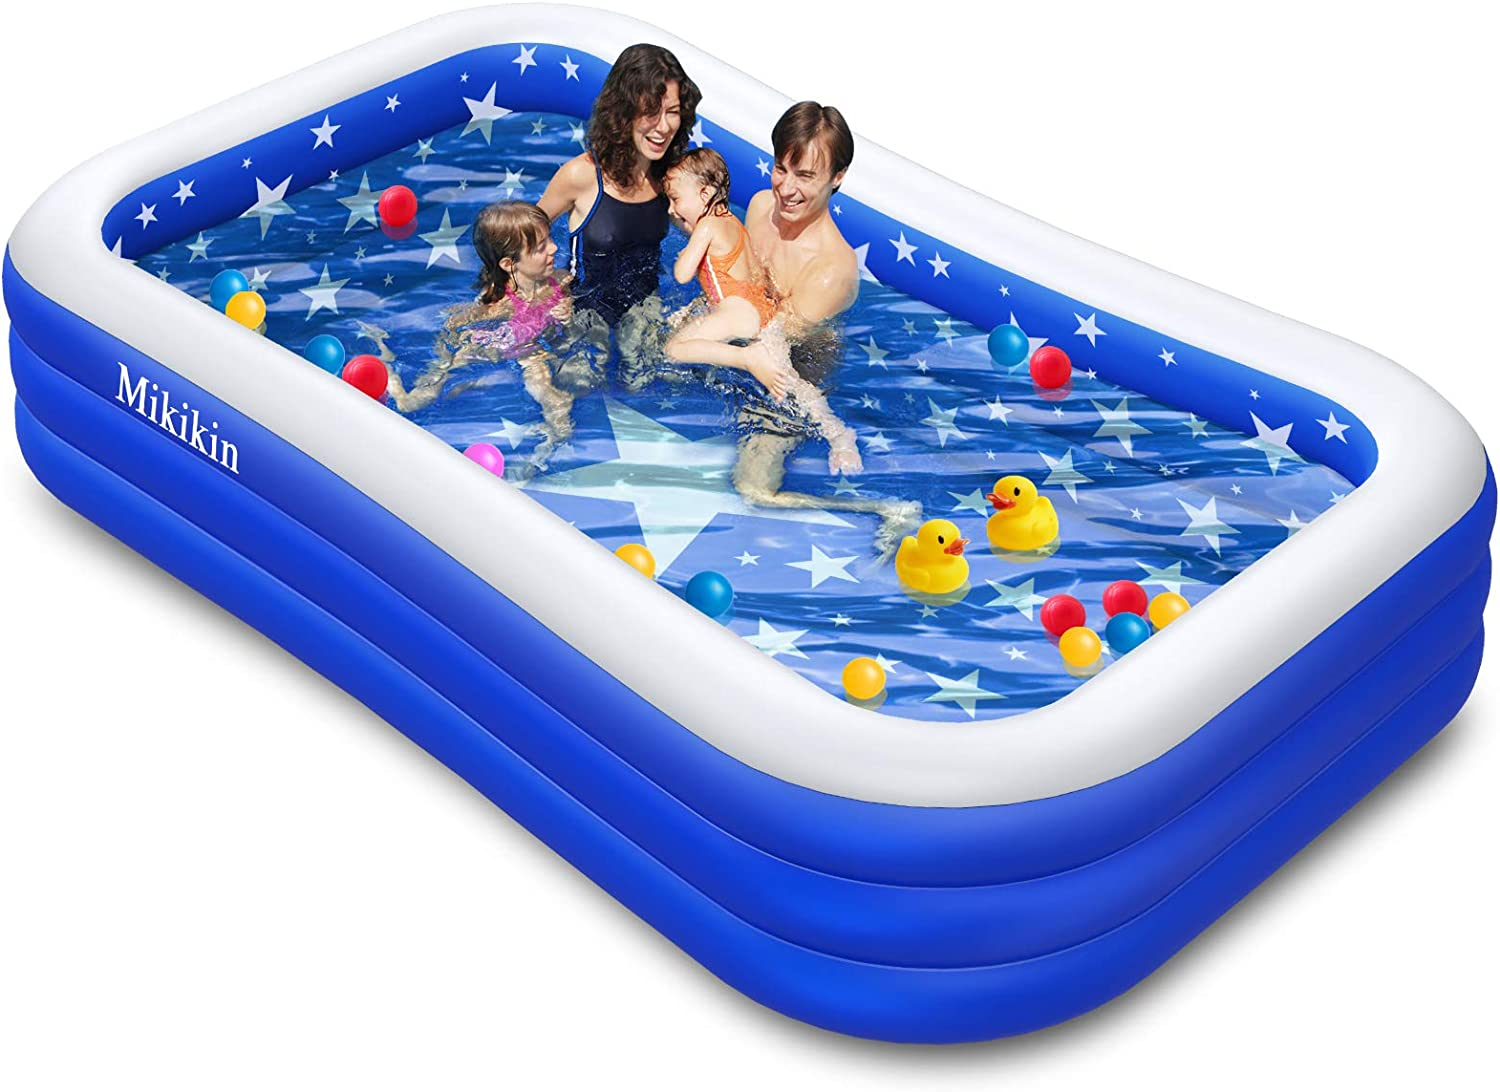 Inflatable Family Swimming Pool, Inflatable Pool for Kiddie, Kids, Adults, Toddlers, Infant, 120